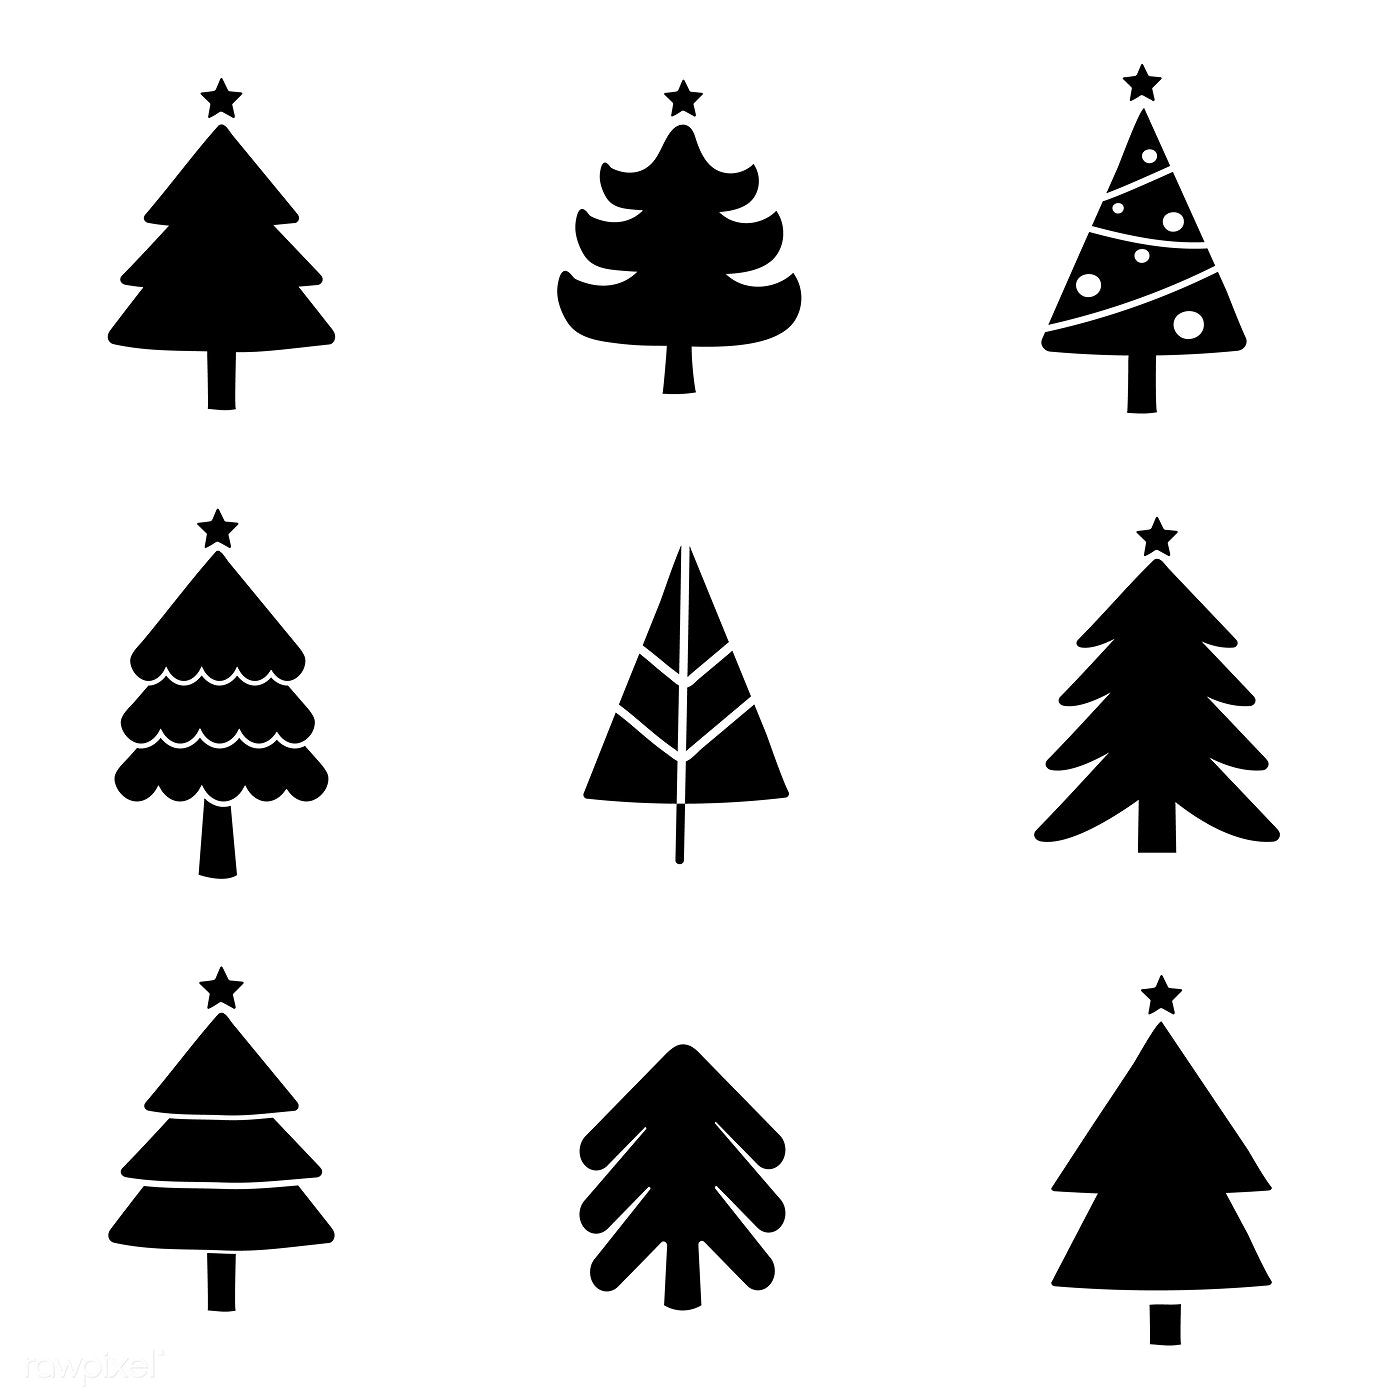 Set Of Christmas Tree Design Elements Vector Free Image By Rawpixel Com Christmas Tree Design Tree Designs Christmas Design